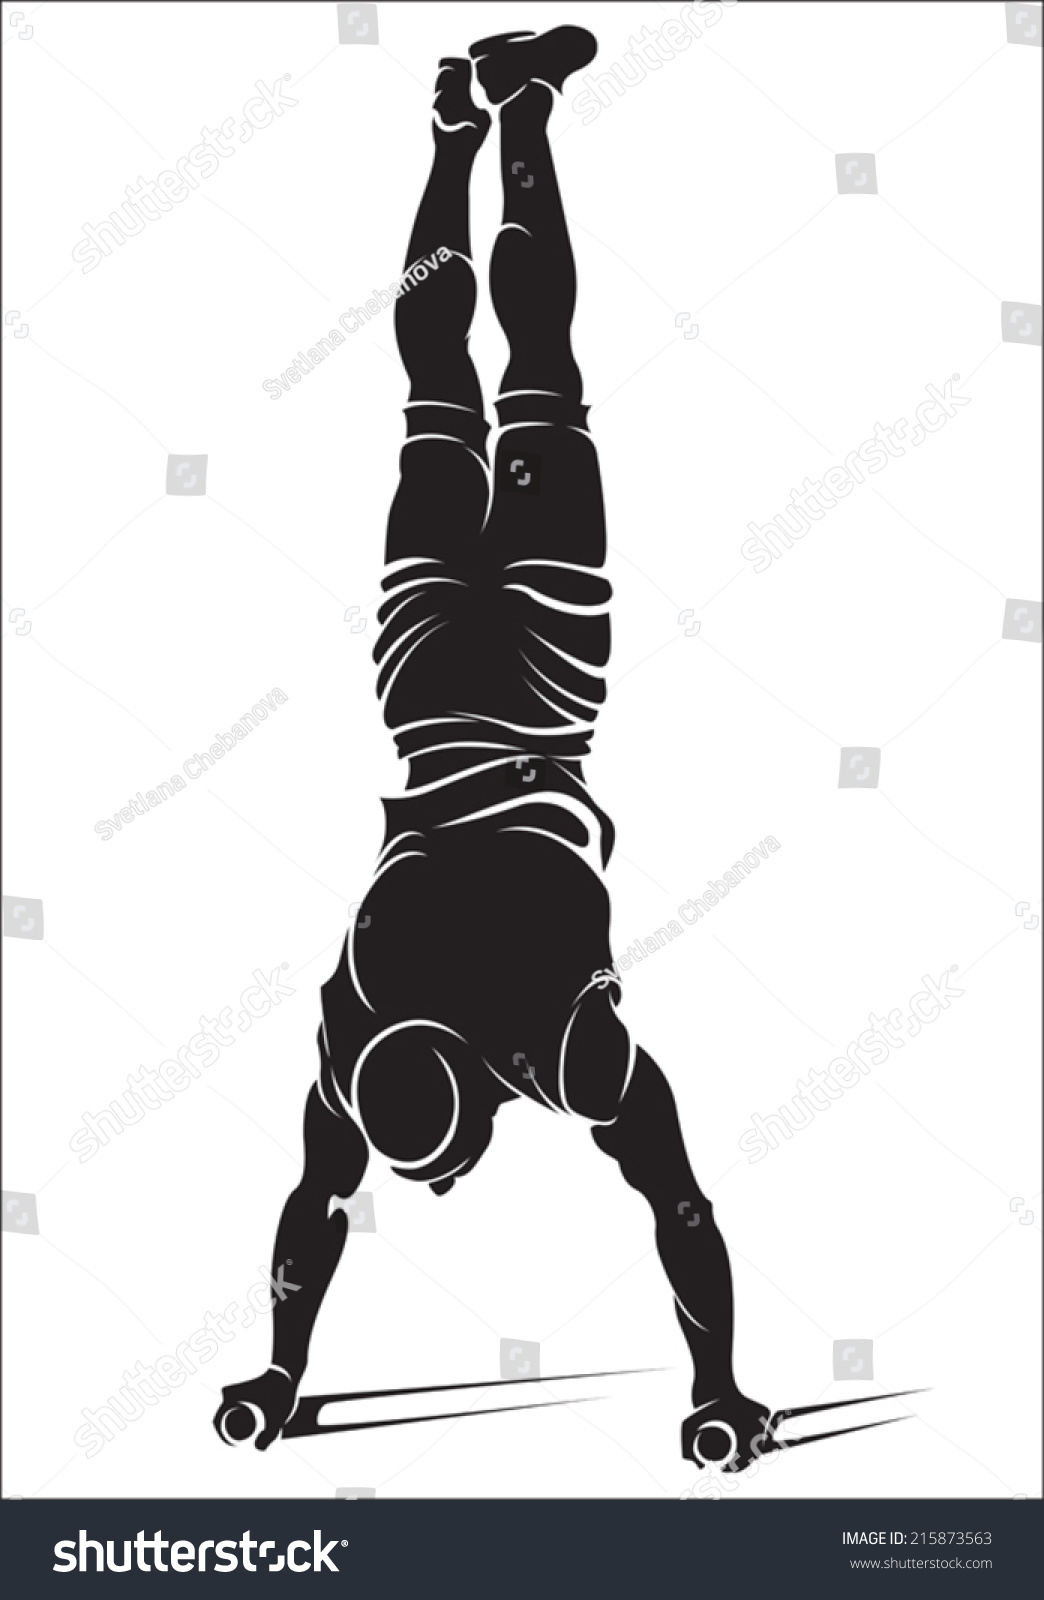 Woman Oh Woman Artwork By Cassandra Calin moreover Young Active Businessman 5915370 moreover Stock Photos Yoga Asanas Simple Icons Poses Image38884213 together with Ashtanga Yoga Poses 1 moreover Mudra. on yoga pose drawings